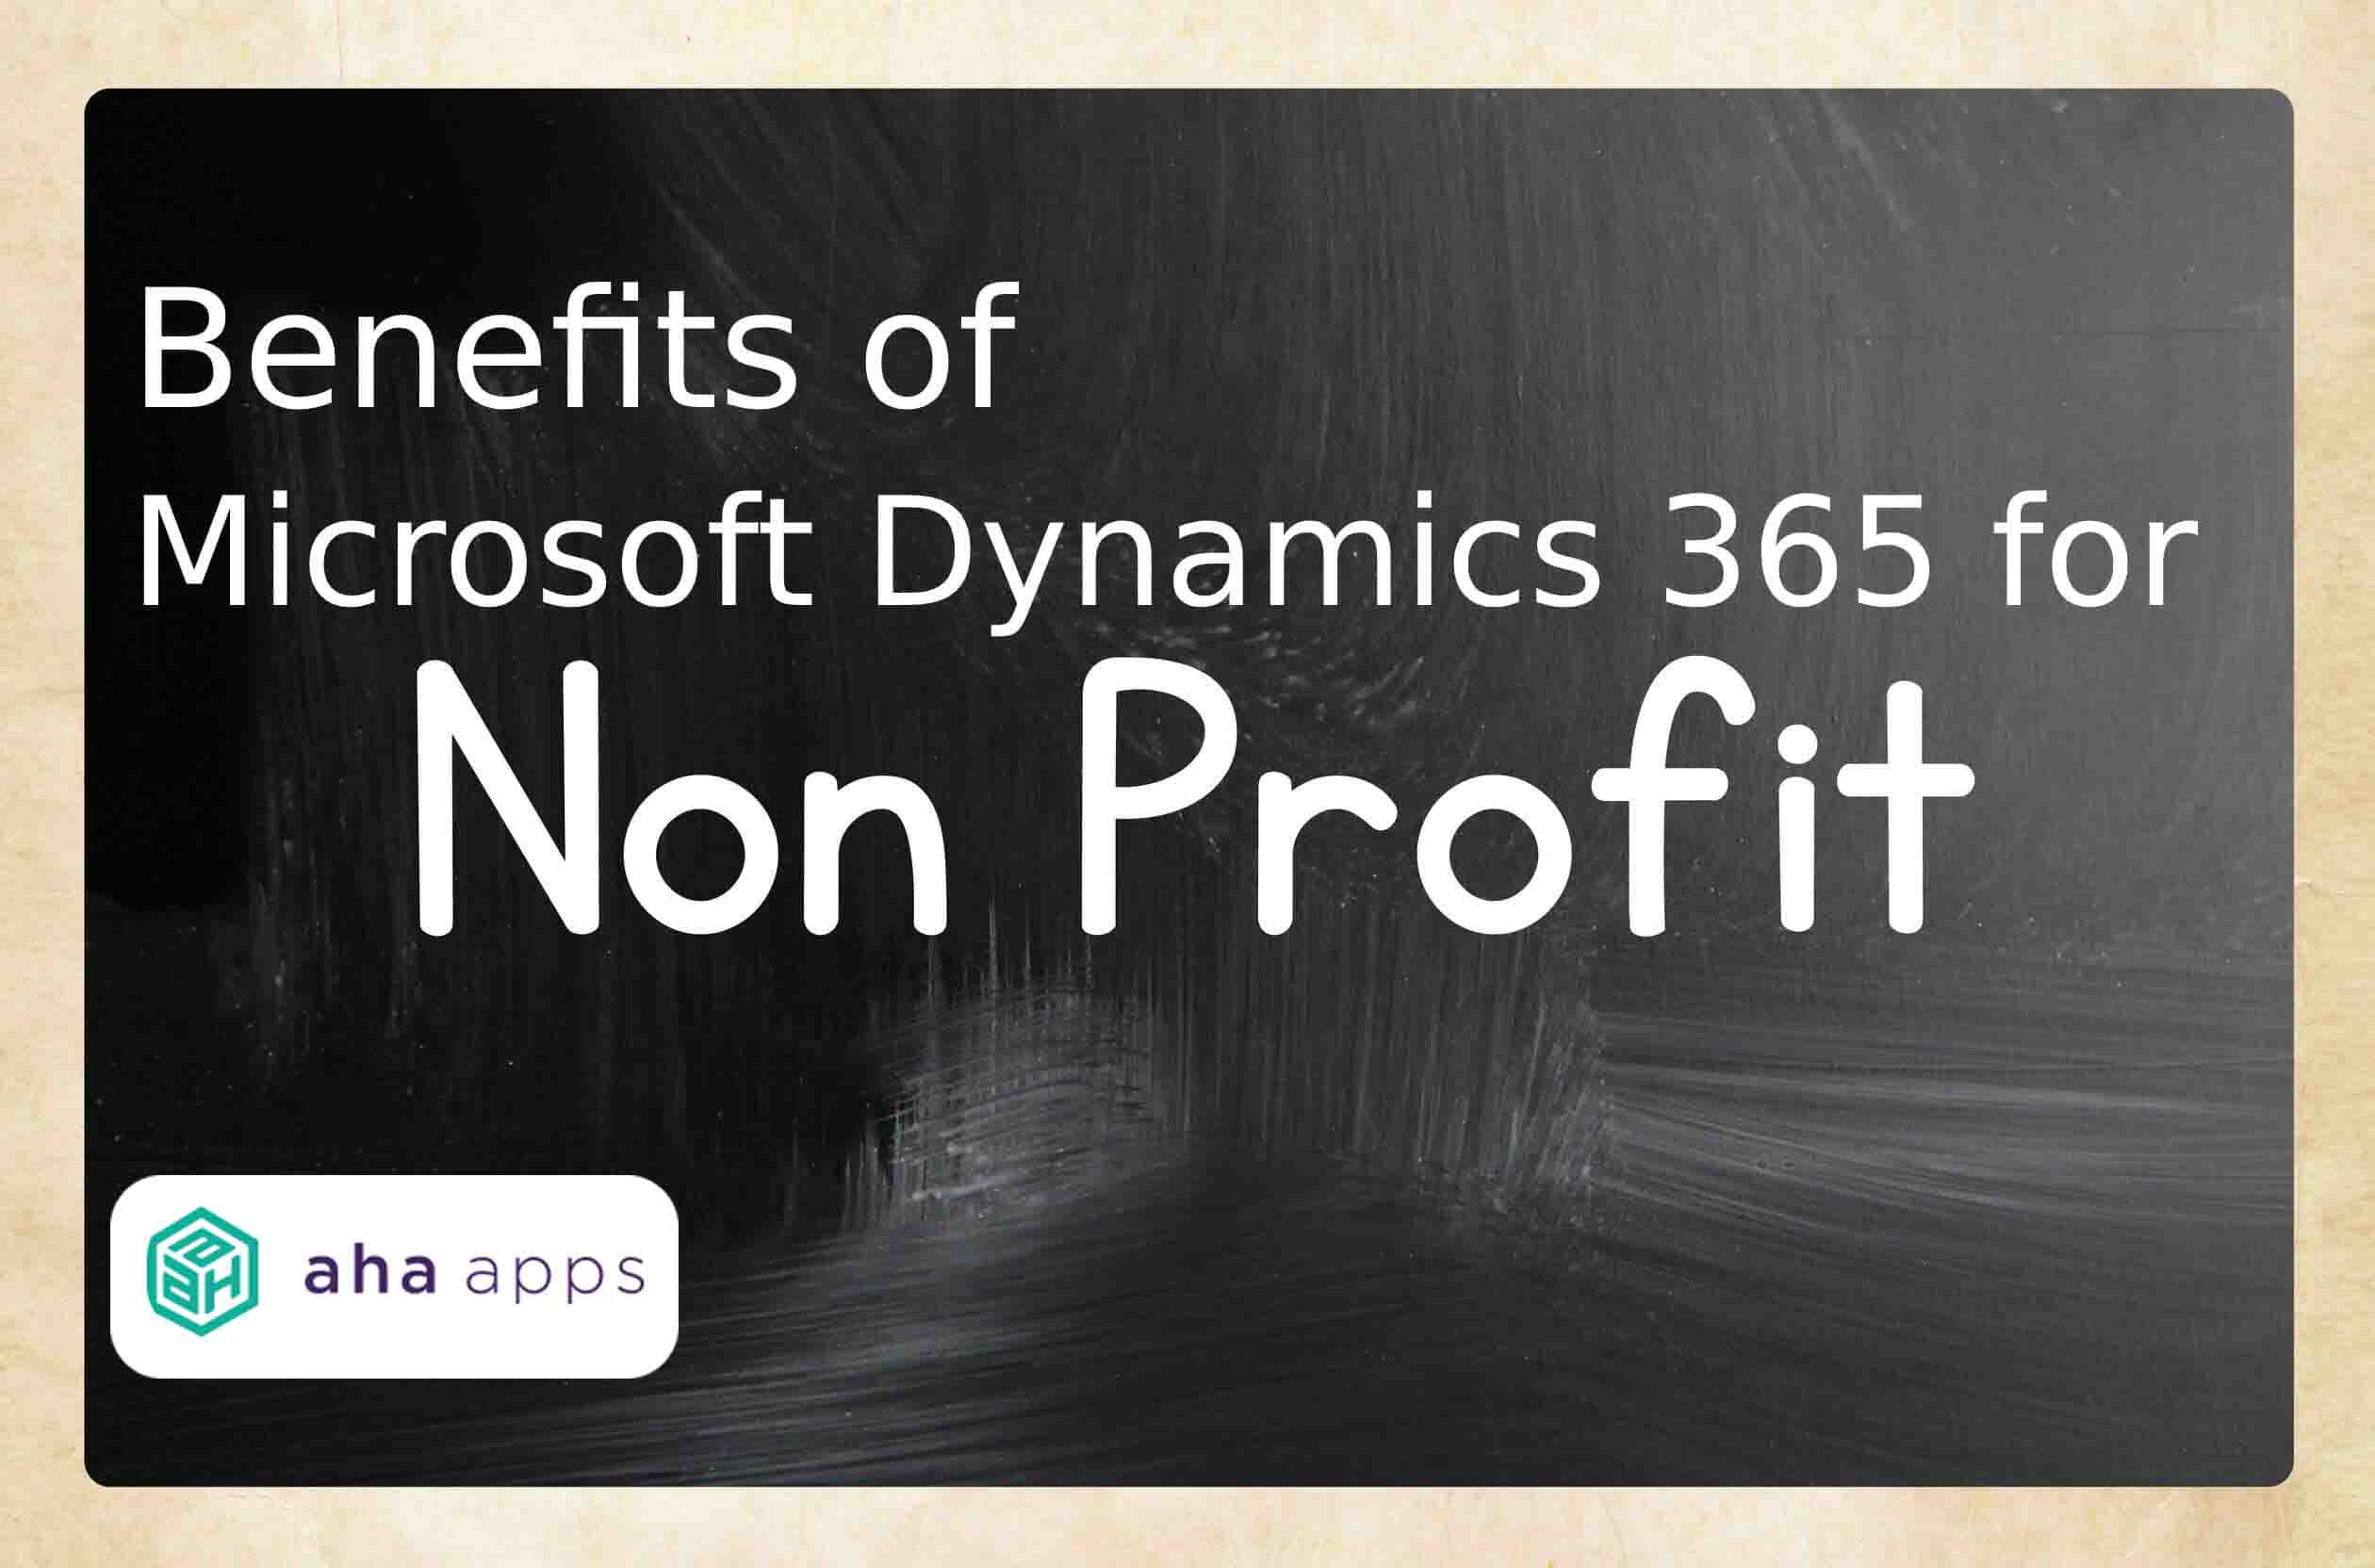 Benefits of Microsoft Dynamics 365 for nonprofits - AhaApps